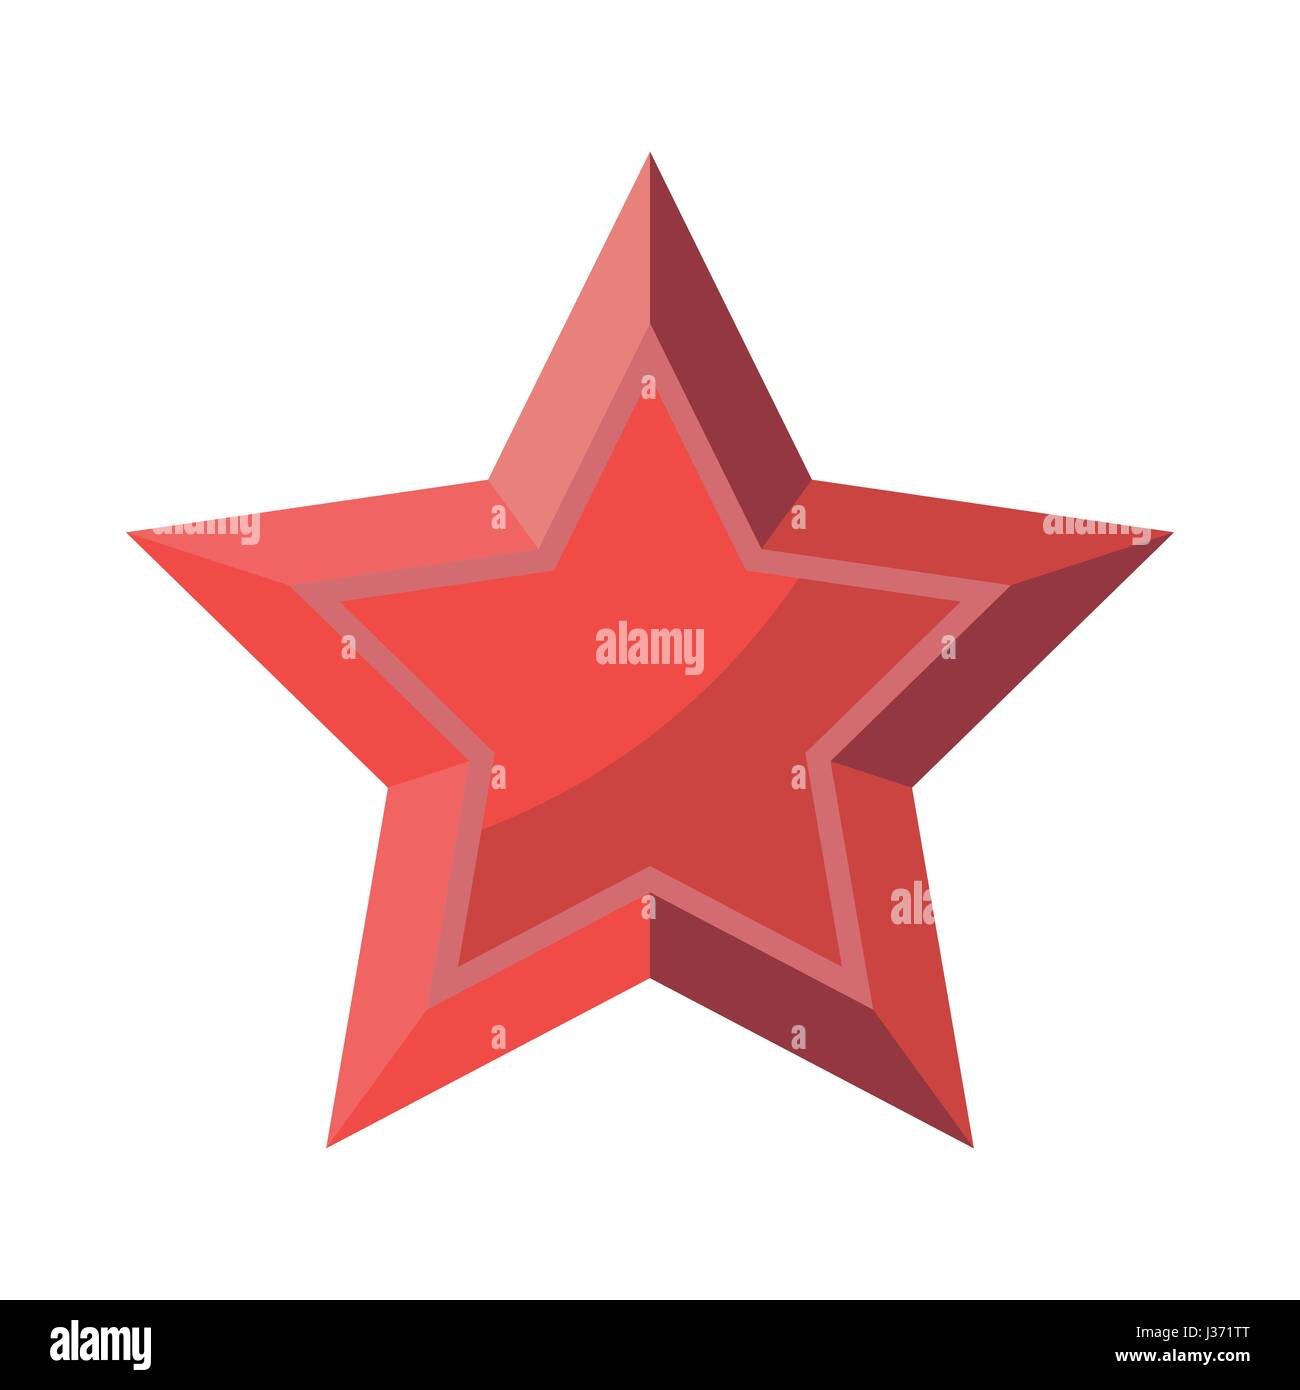 Red Star with shadows isolated on White Background 23 February 9 May. Symbol of victory. - Stock Vector